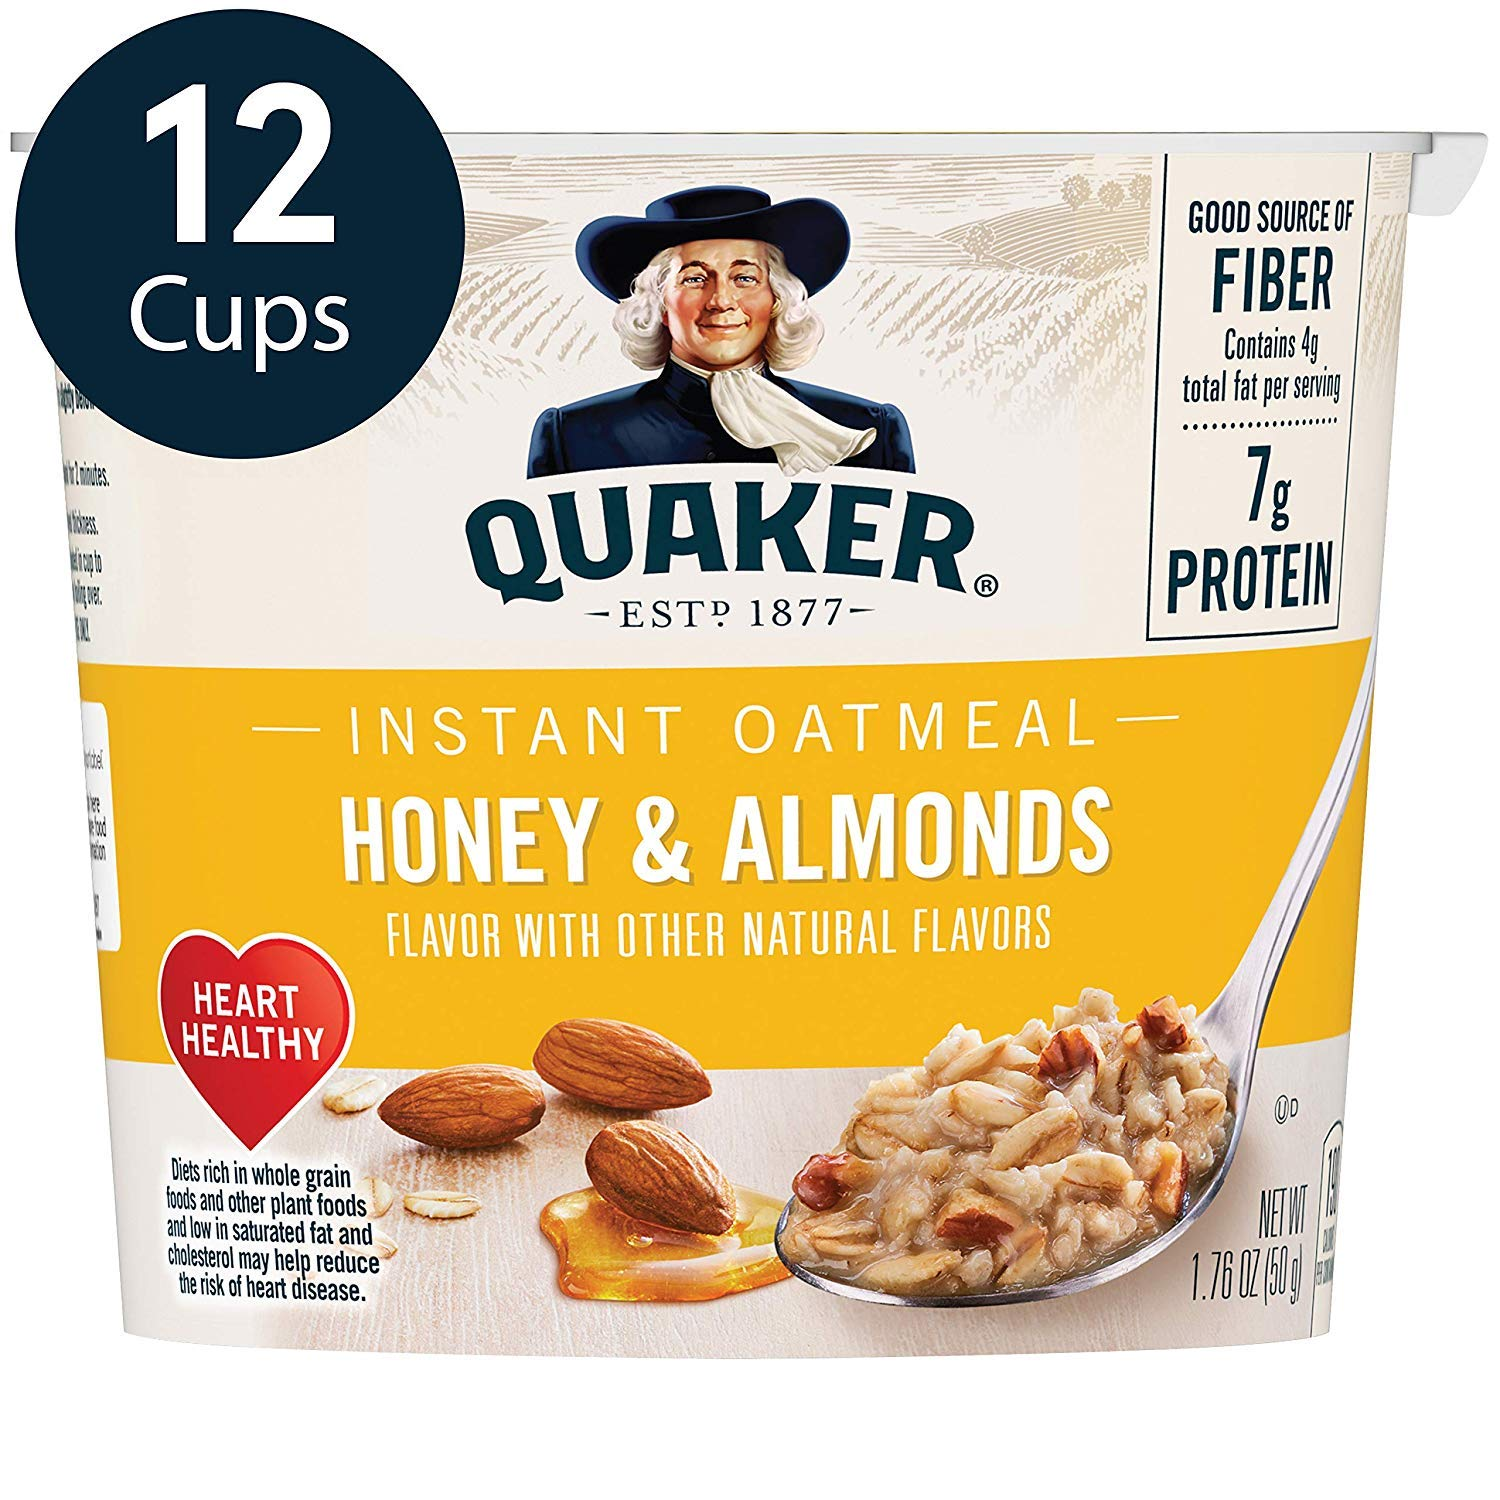 Fat Body Using Instant Oatmeal?